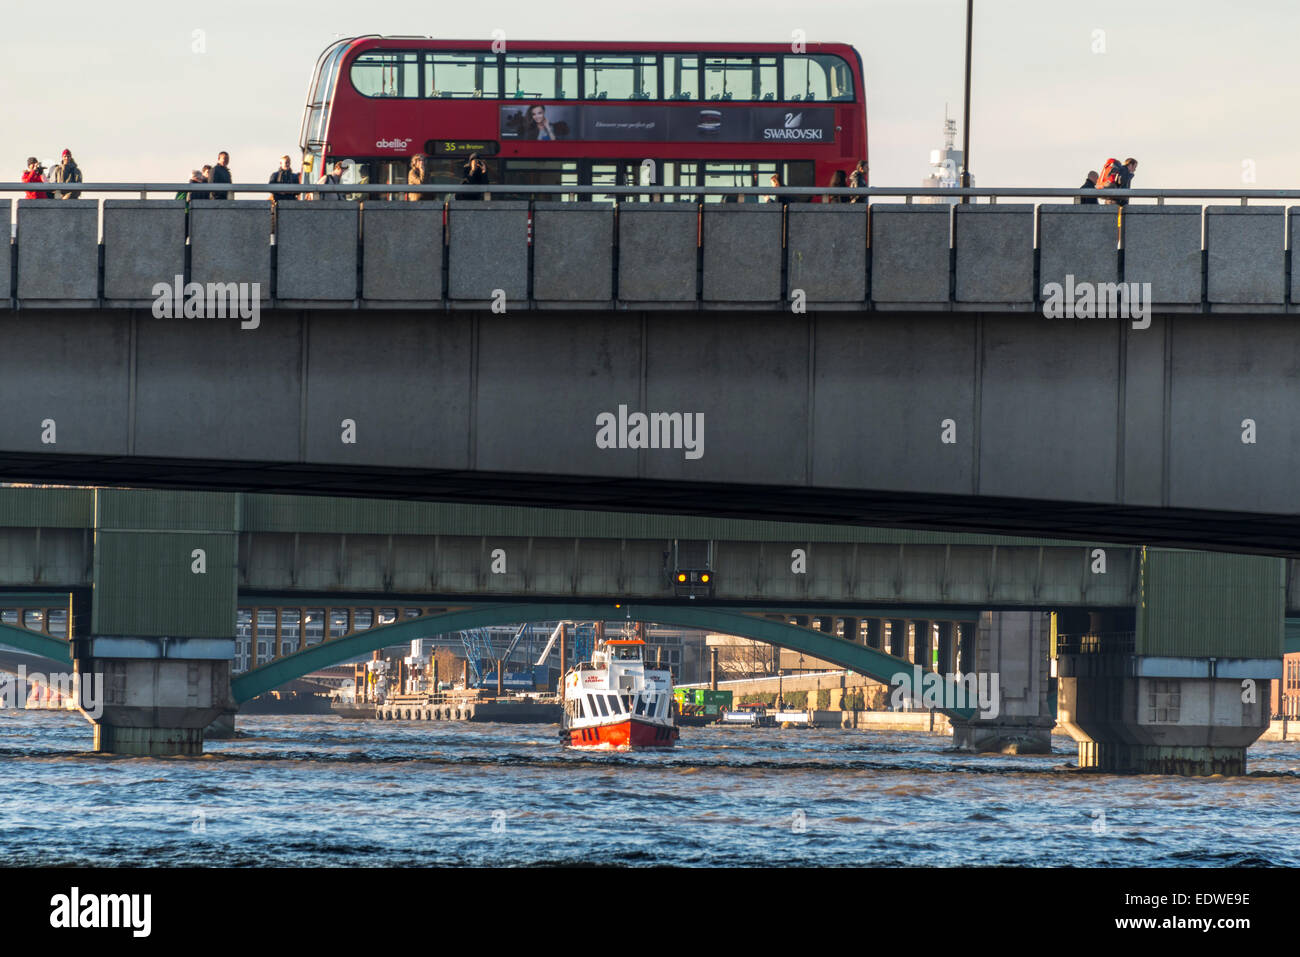 A London red bus passes over London Bridge while a River Thames cruise boat passes below Southwark Bridge. - Stock Image